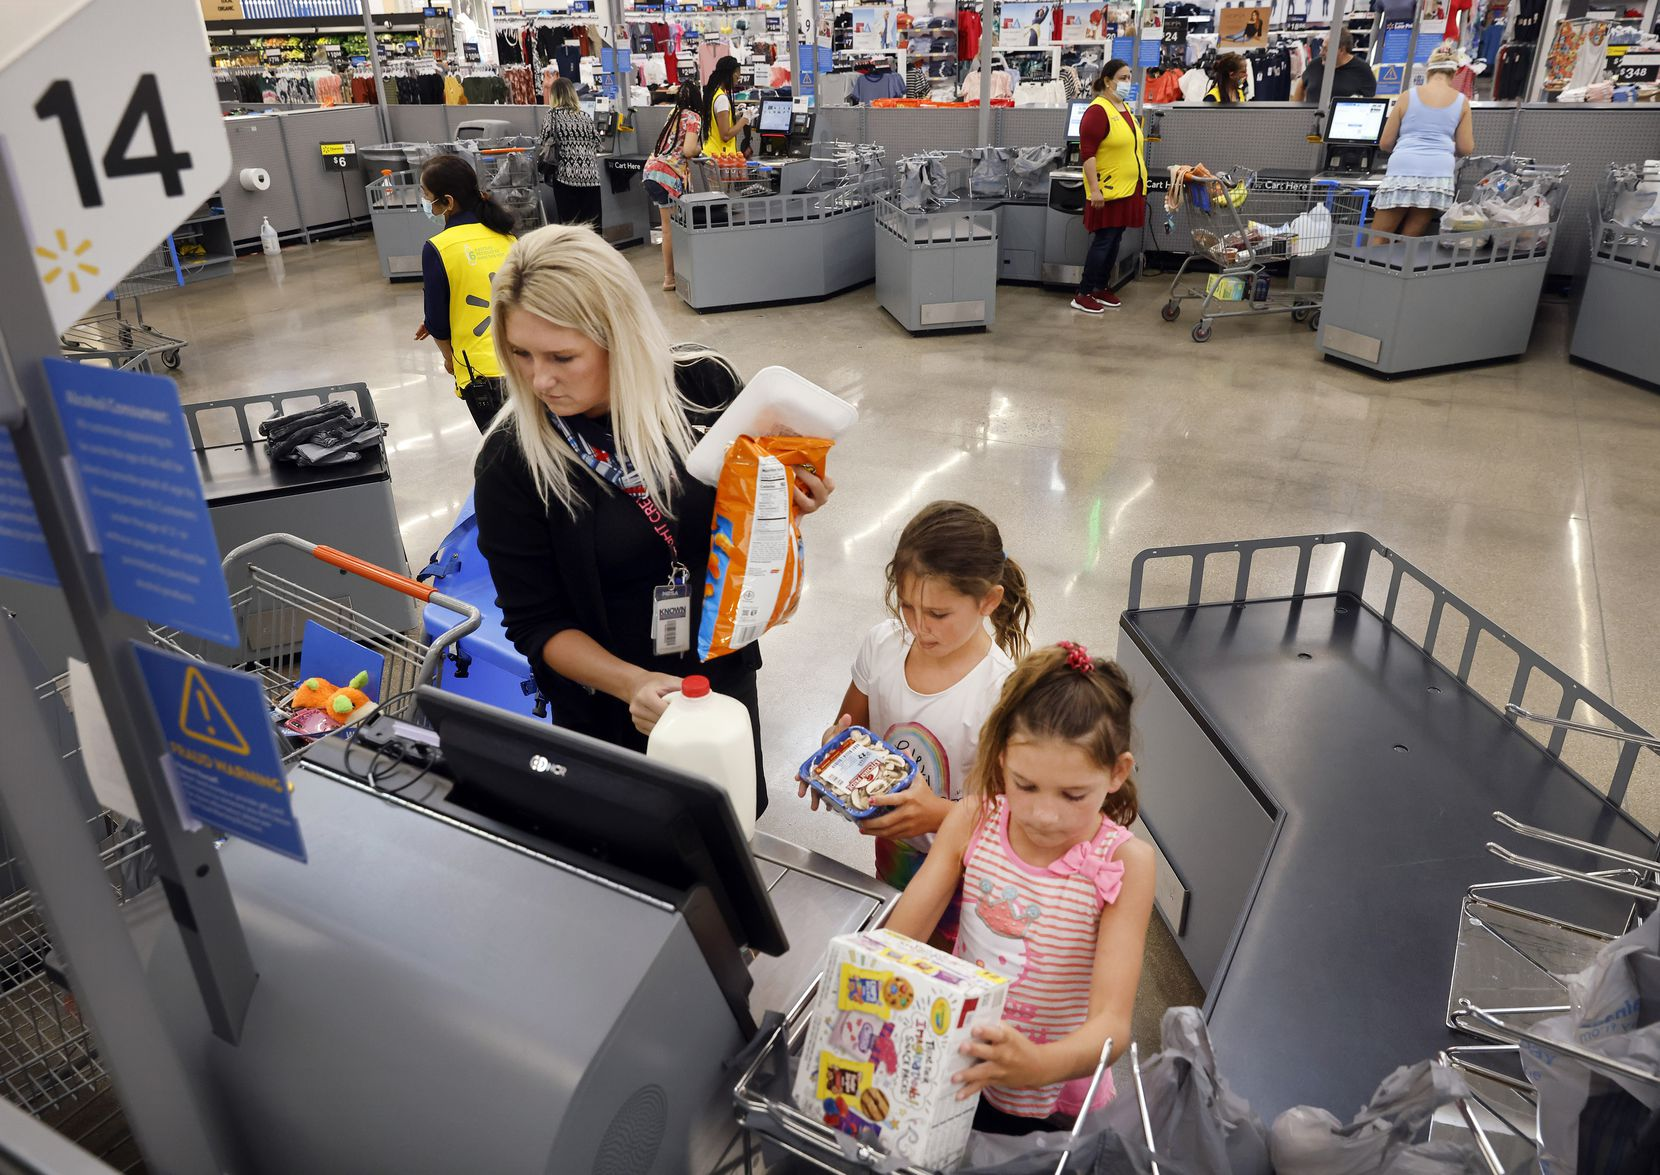 Breanna Hale of Frisco receives some help from her daughters, Burklee (center) and Ellasyn, who bag her scanned items at the Walmart Supercenter on Ohio Drive in Plano. The store is testing a large corral of self checkout stations with a big open space in the middle where the old cashier lanes used to be.